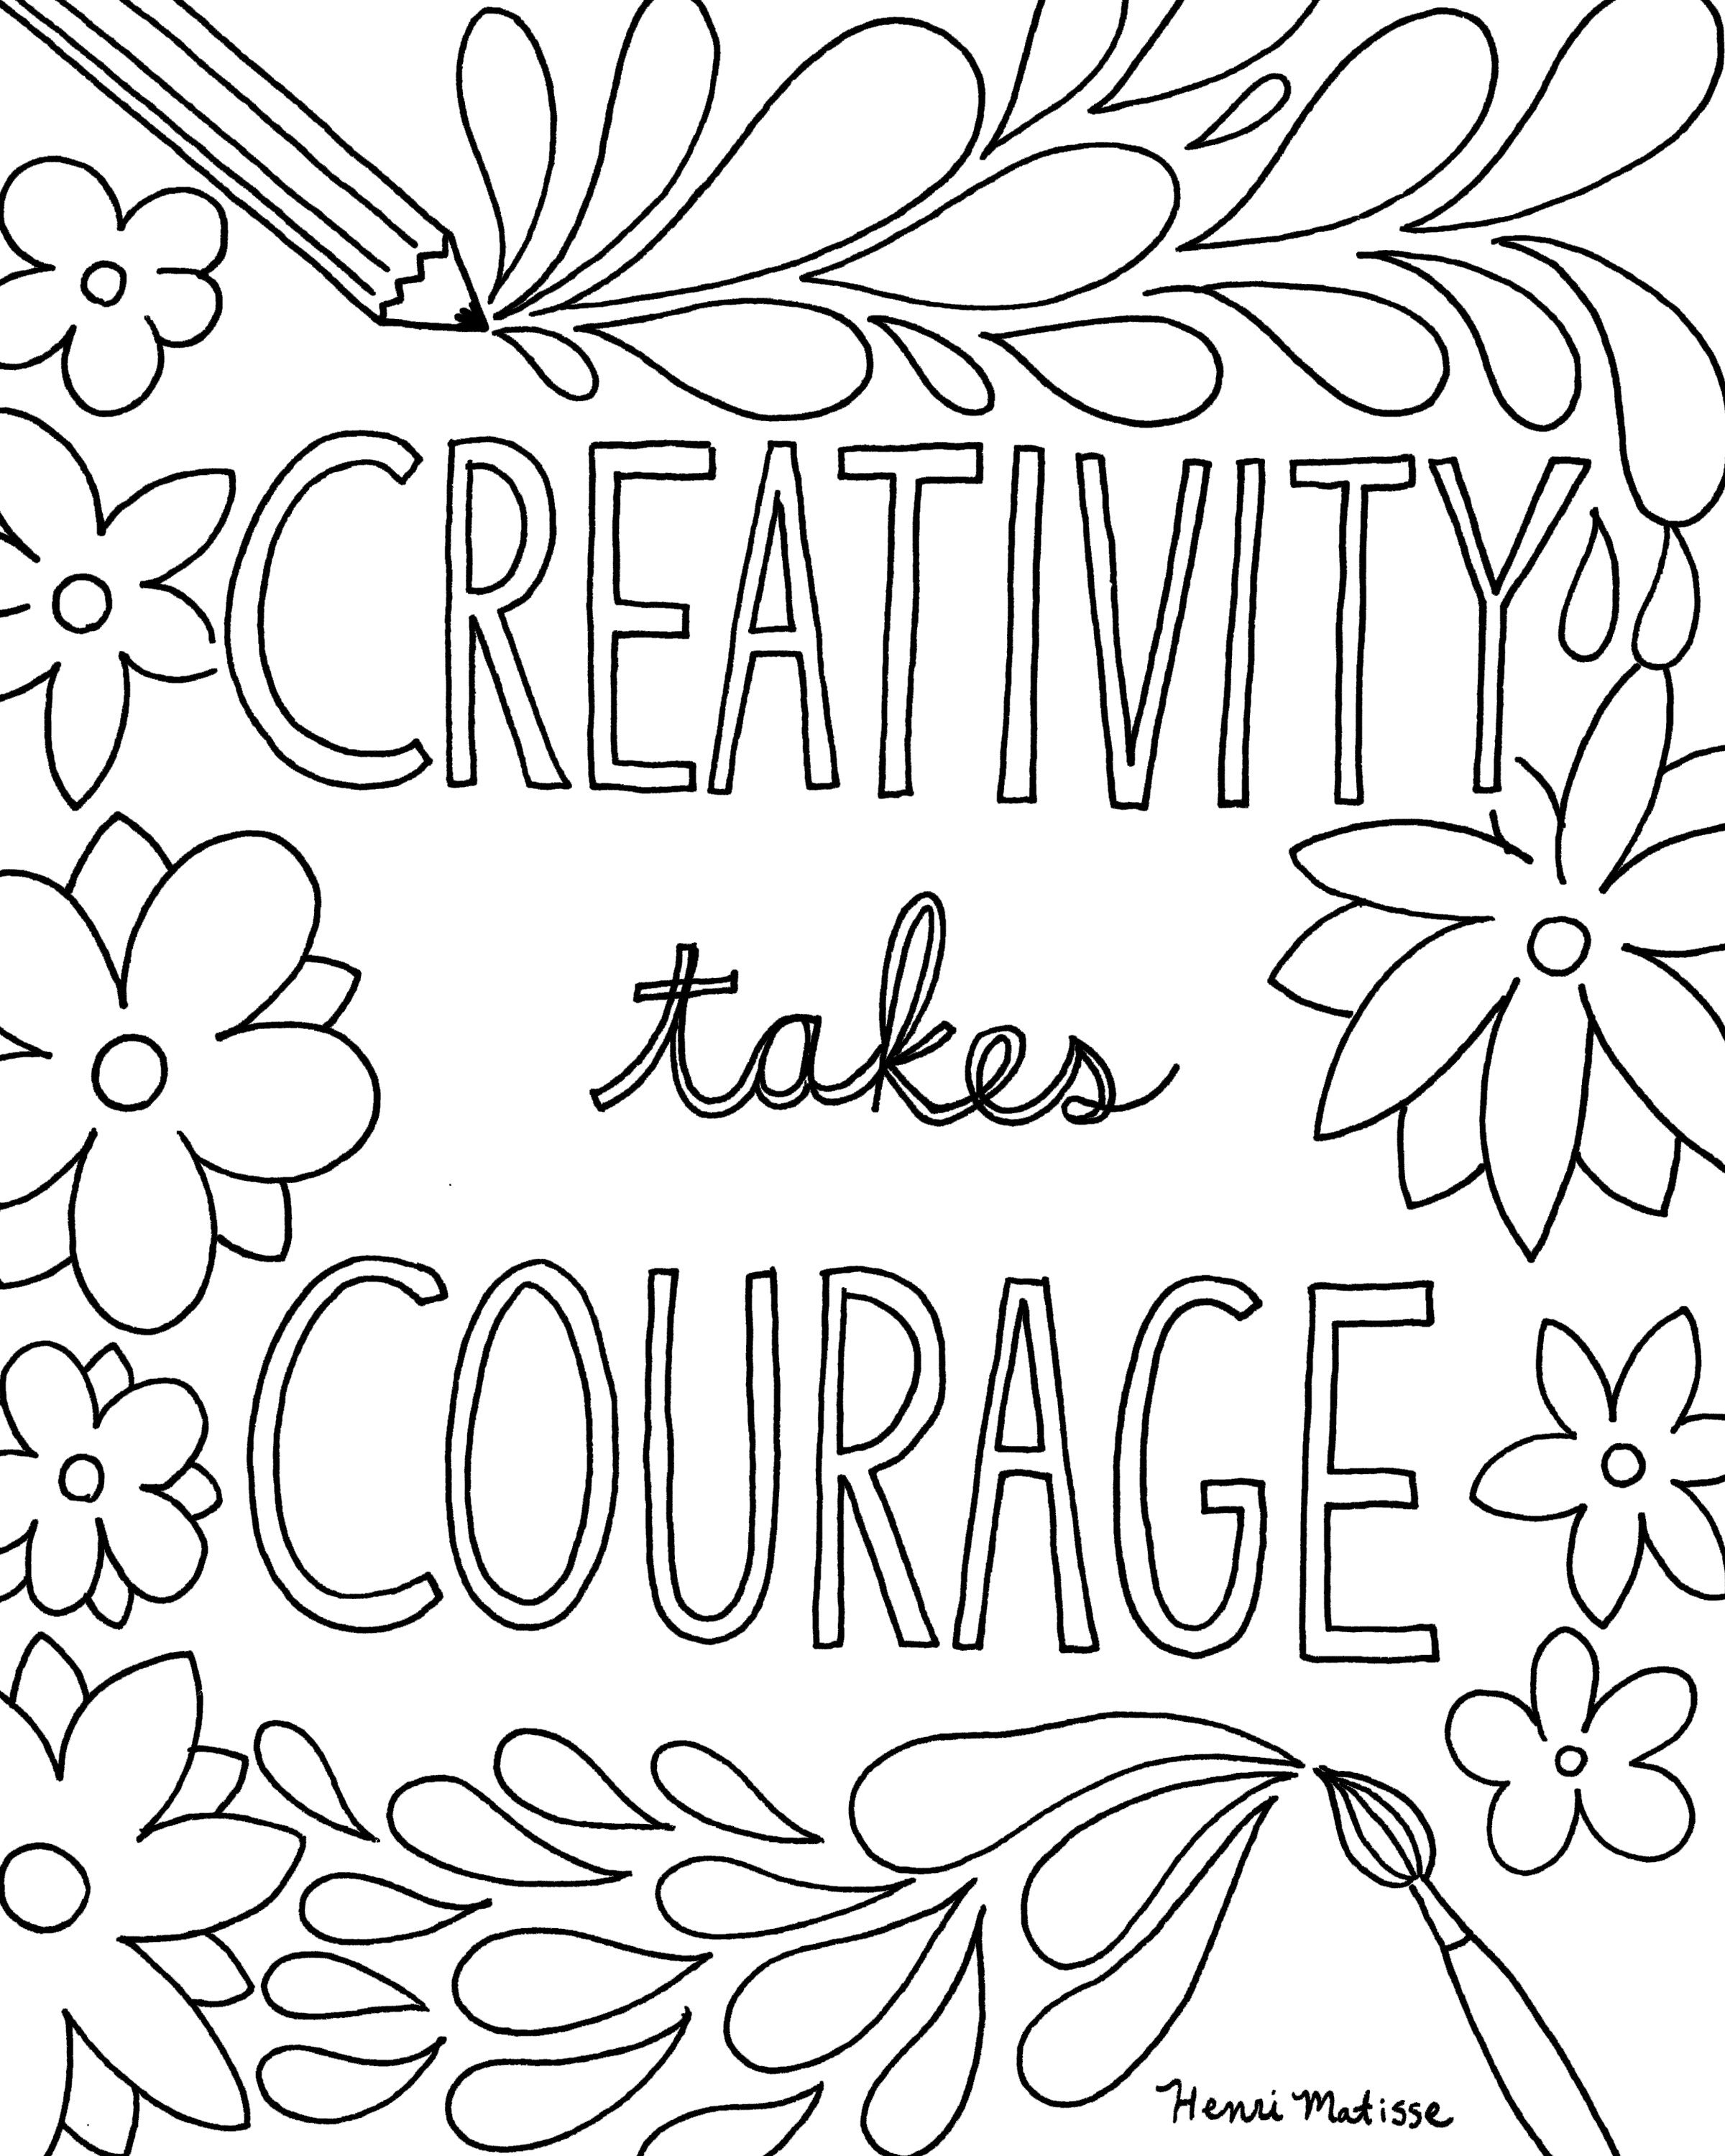 Craftsy Com Express Your Creativity Quote Coloring Pages Inspirational Quotes Coloring Free Printable Quotes